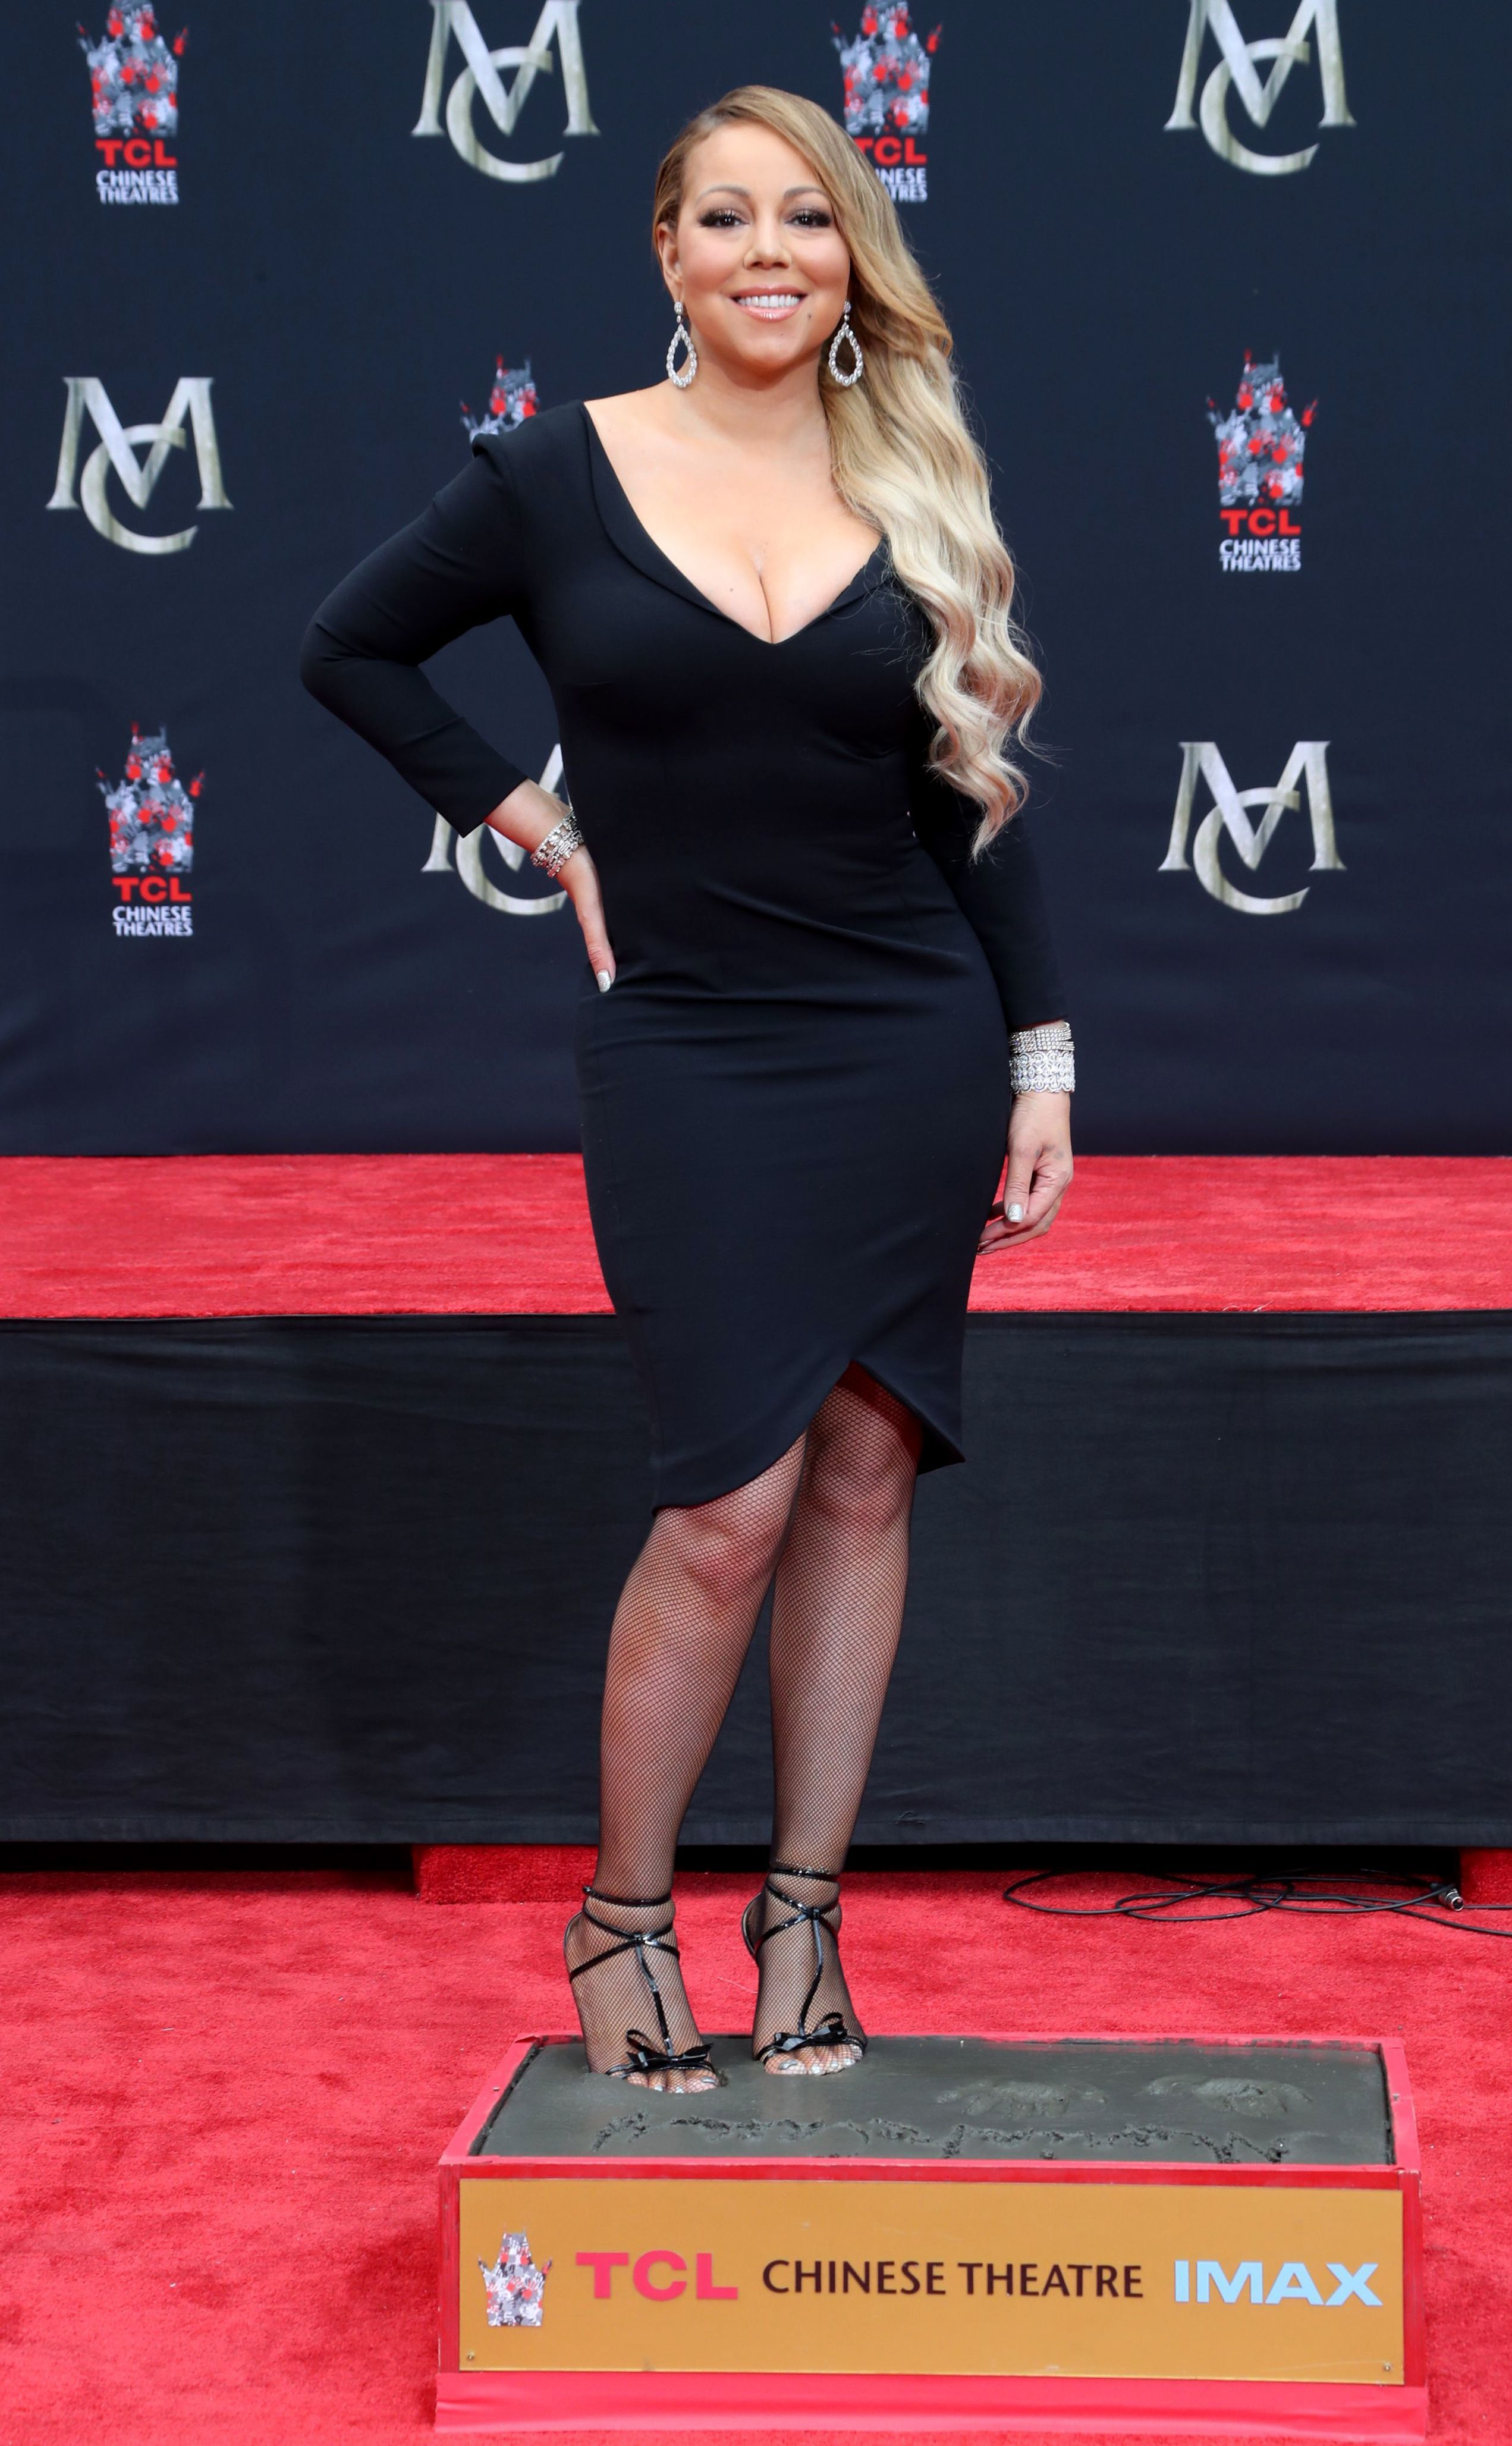 Mariah Carey rumored to have undergone gastric sleeve surgery